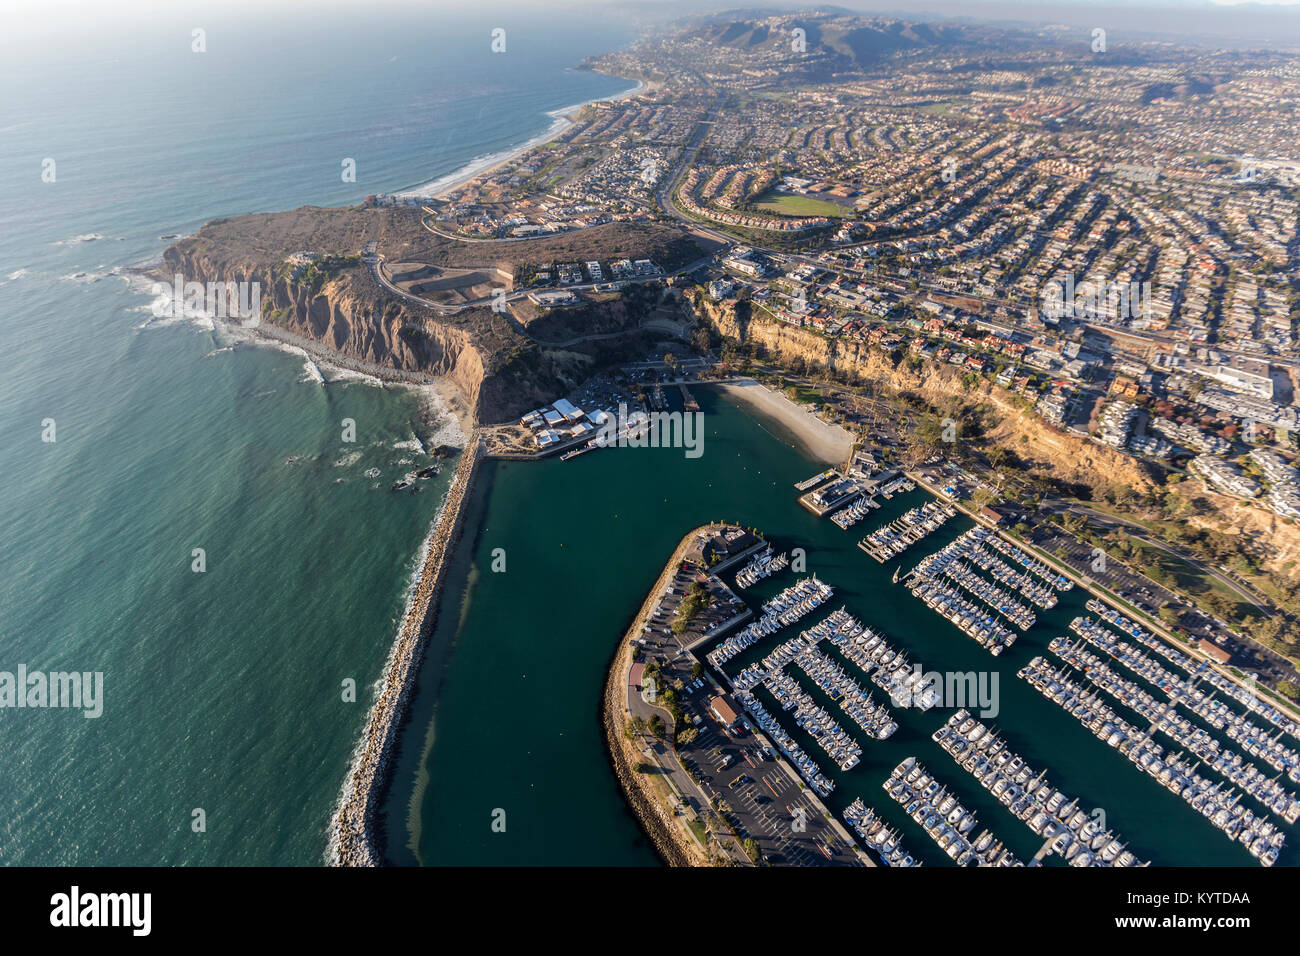 Aerial view of Dana Point park and marina in Orange County, California - Stock Image